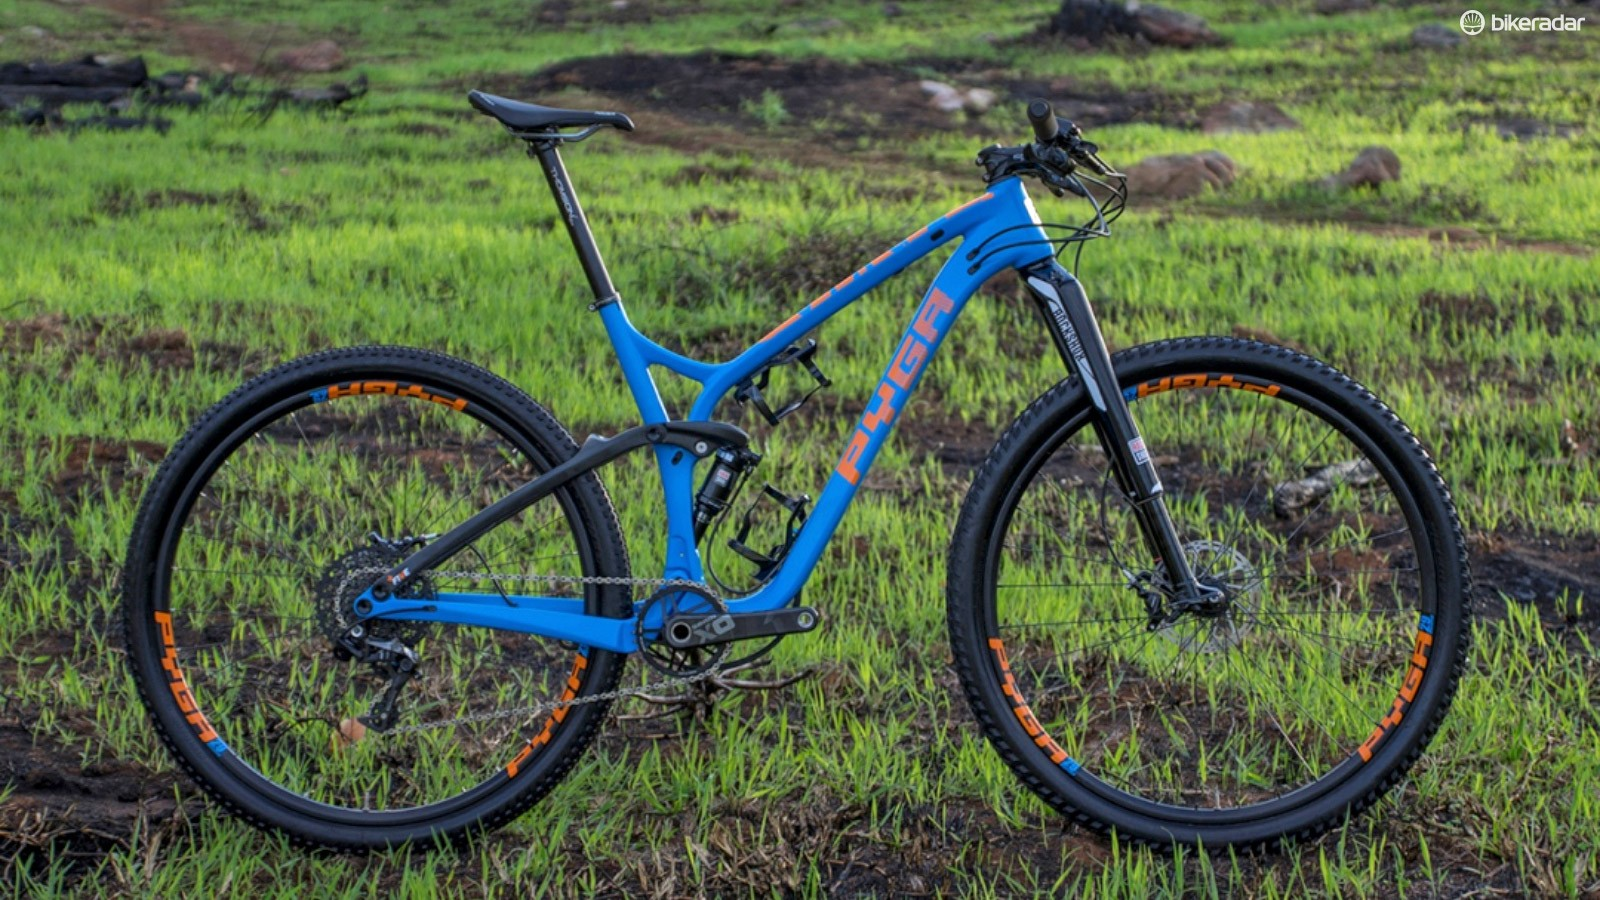 South African company Pyga Industries has announced two new carbon models: the 95mm-travel Stage cross-country racer (shown here) and 126mm-travel Stage Max for marathon events